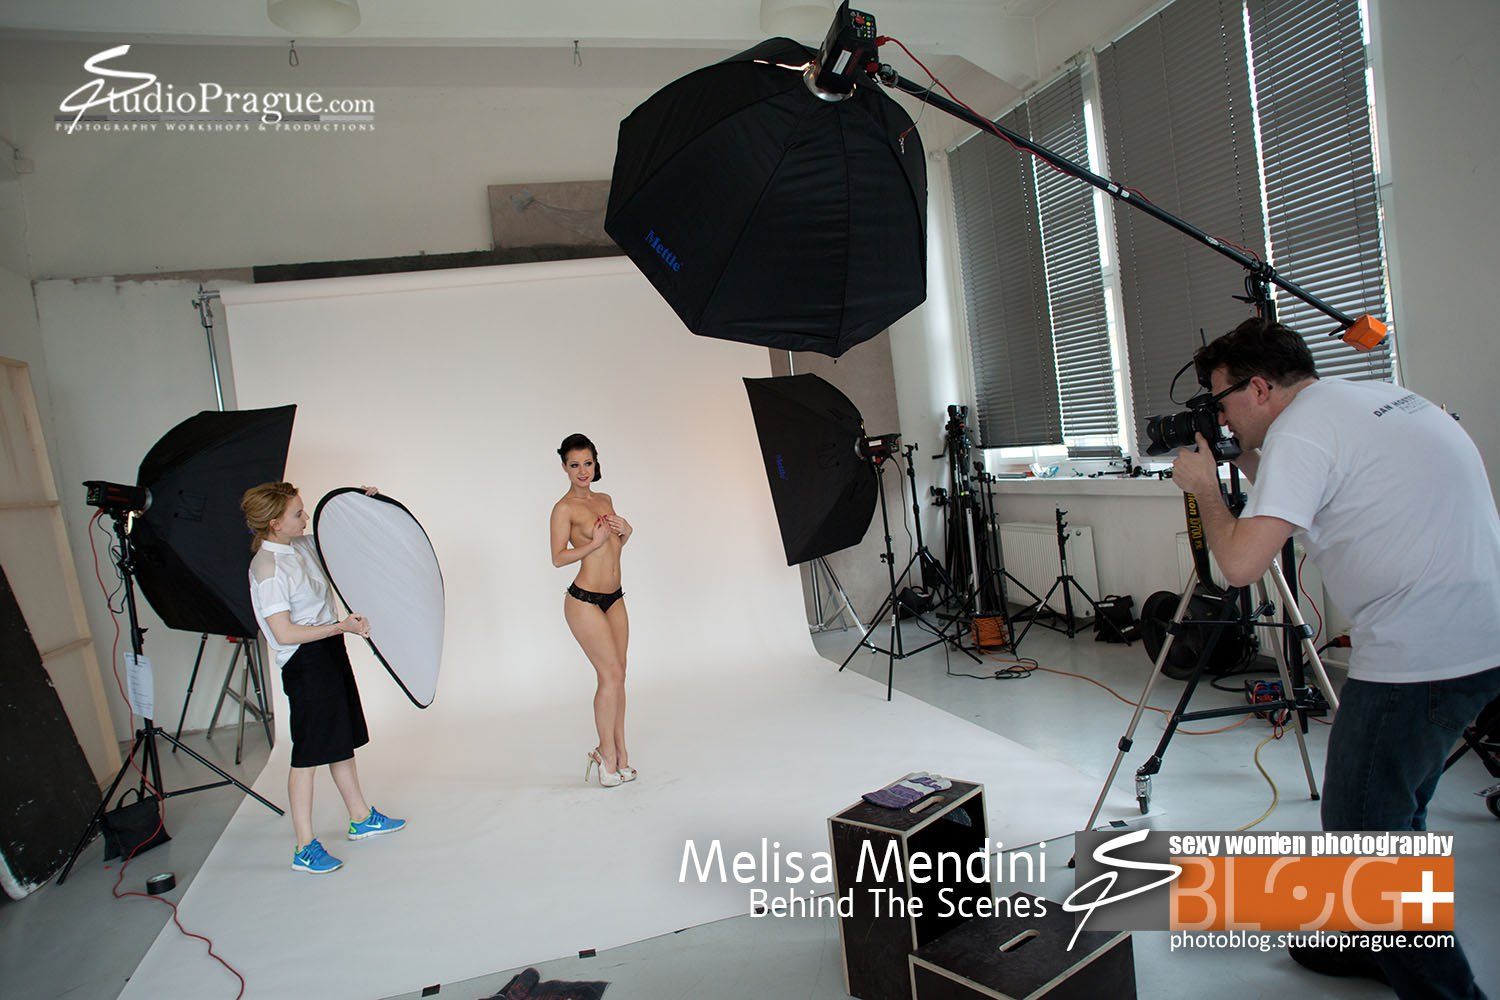 Melisa Mendini - Behind the Scenes in Photo Studio 4 - by Dan Hostettler